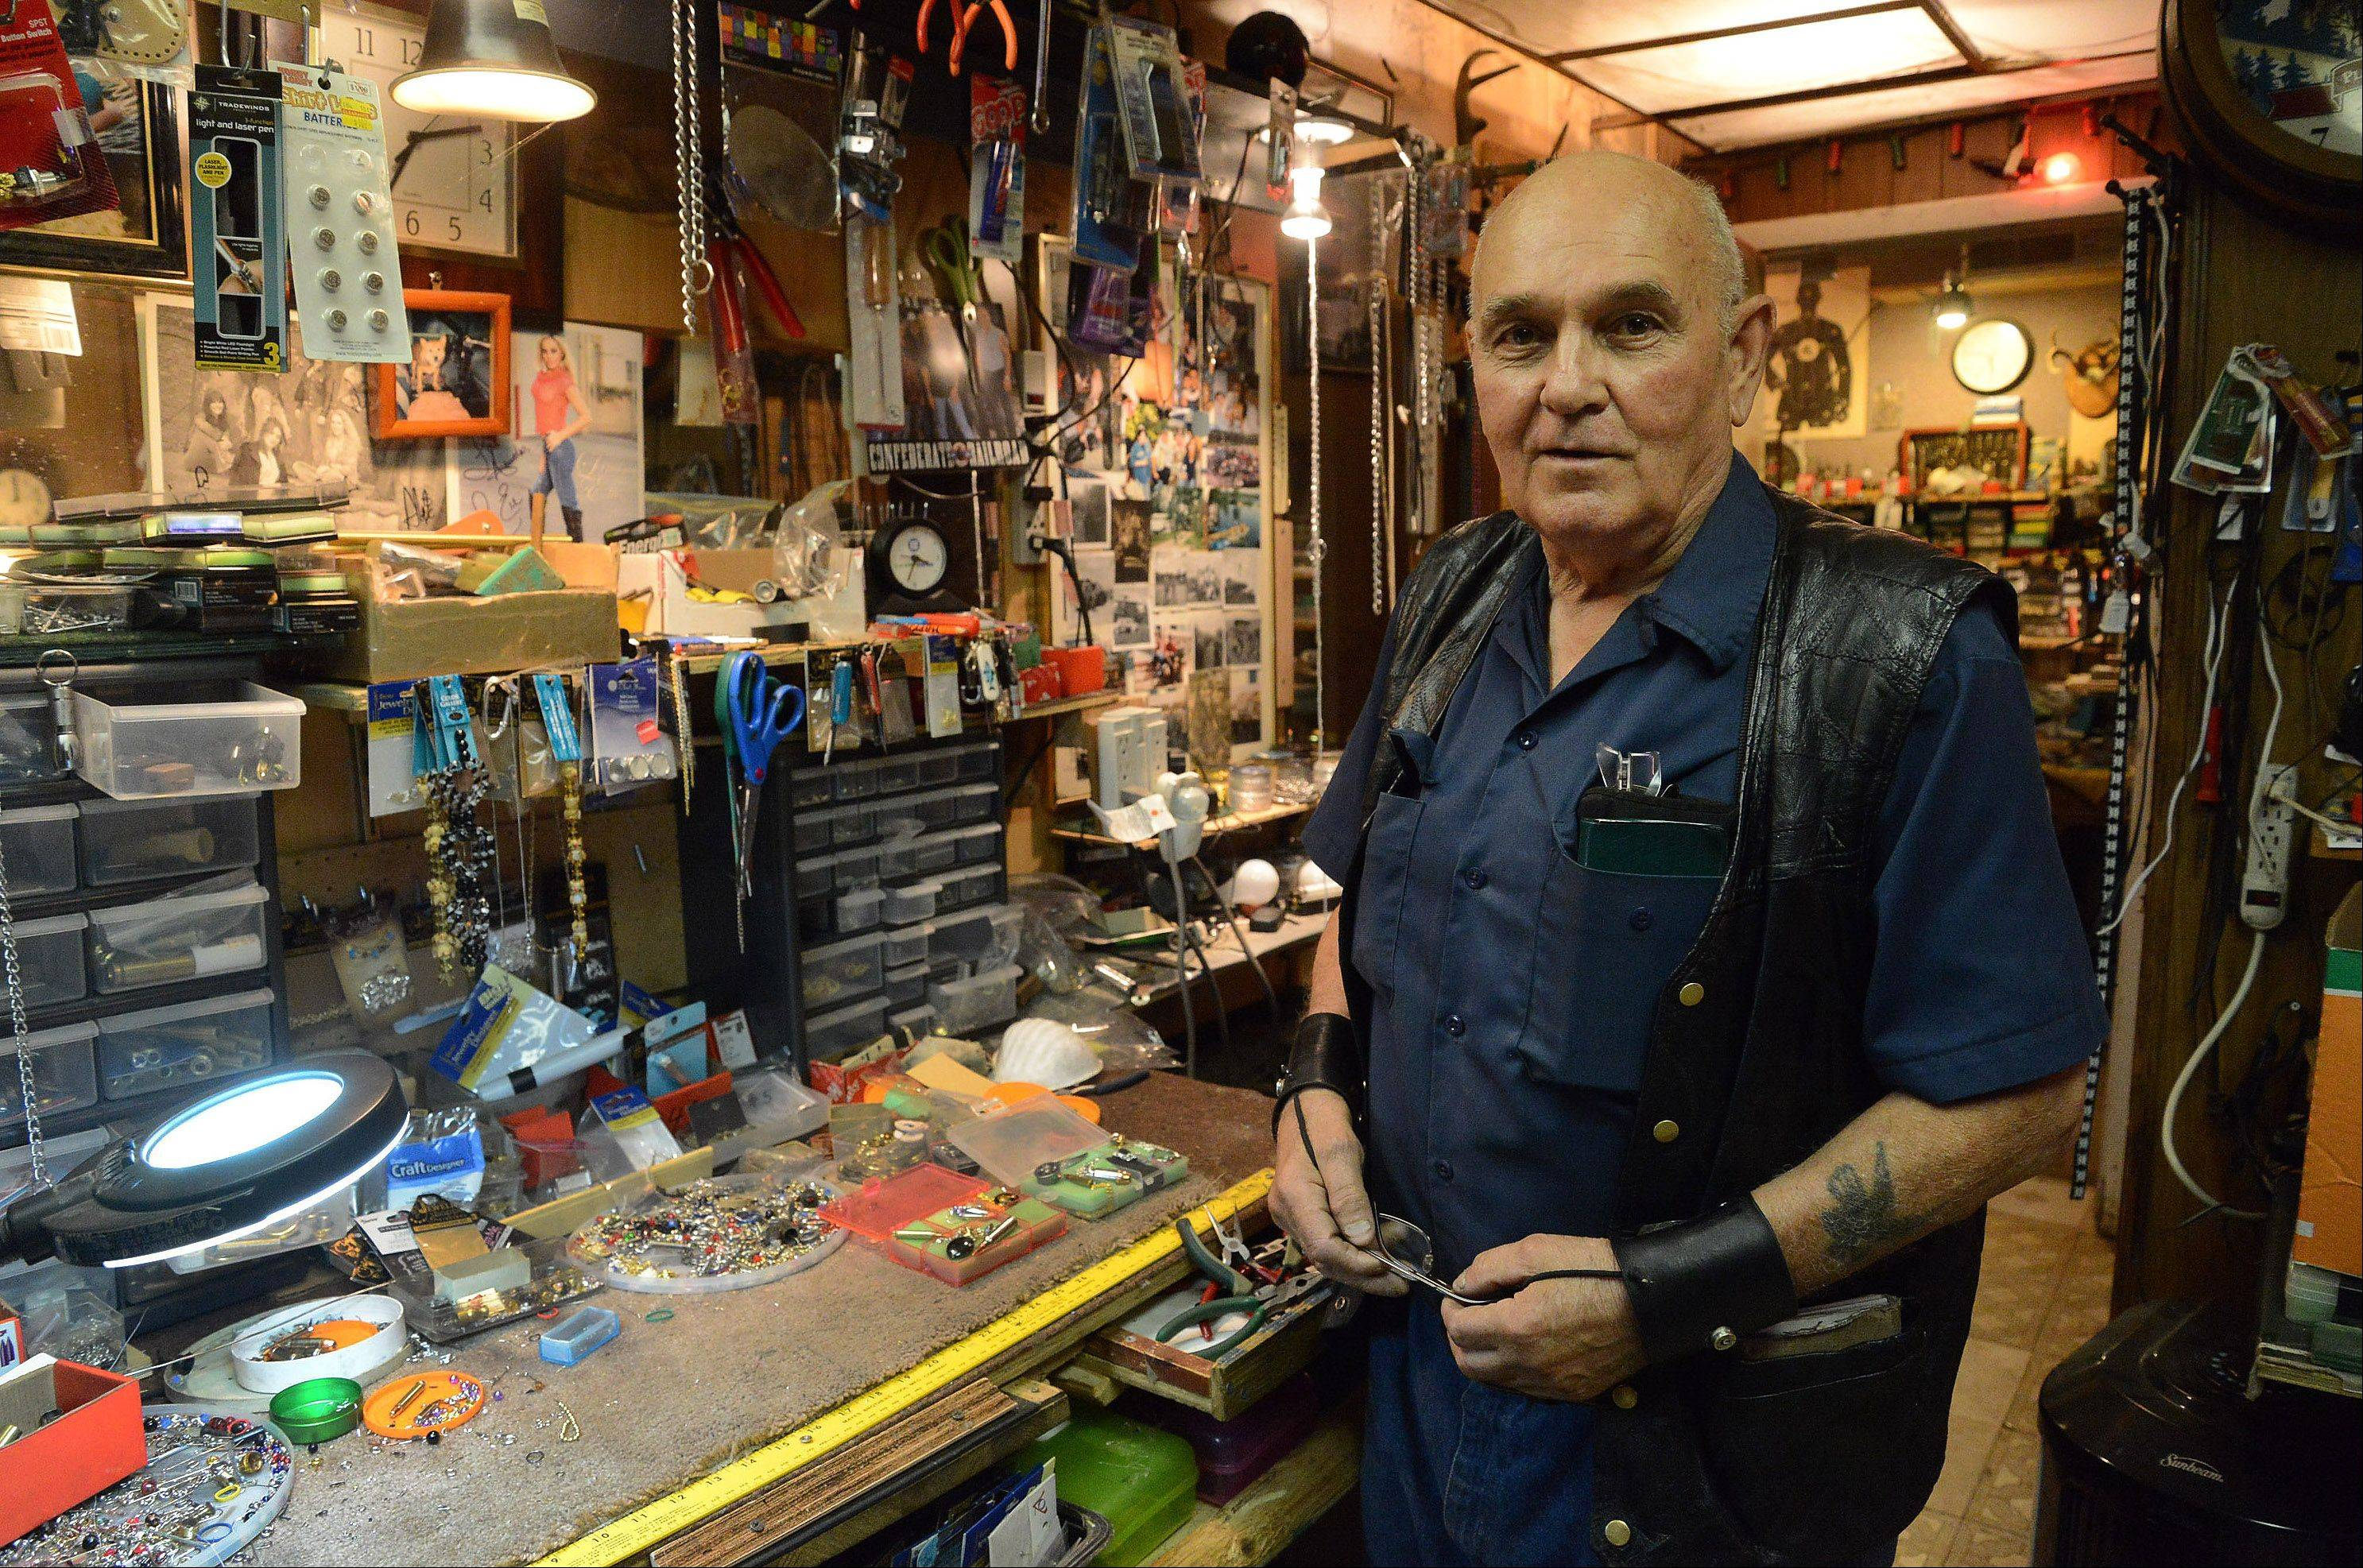 Moving Picture: Mundelein man gets crafty with ammunition